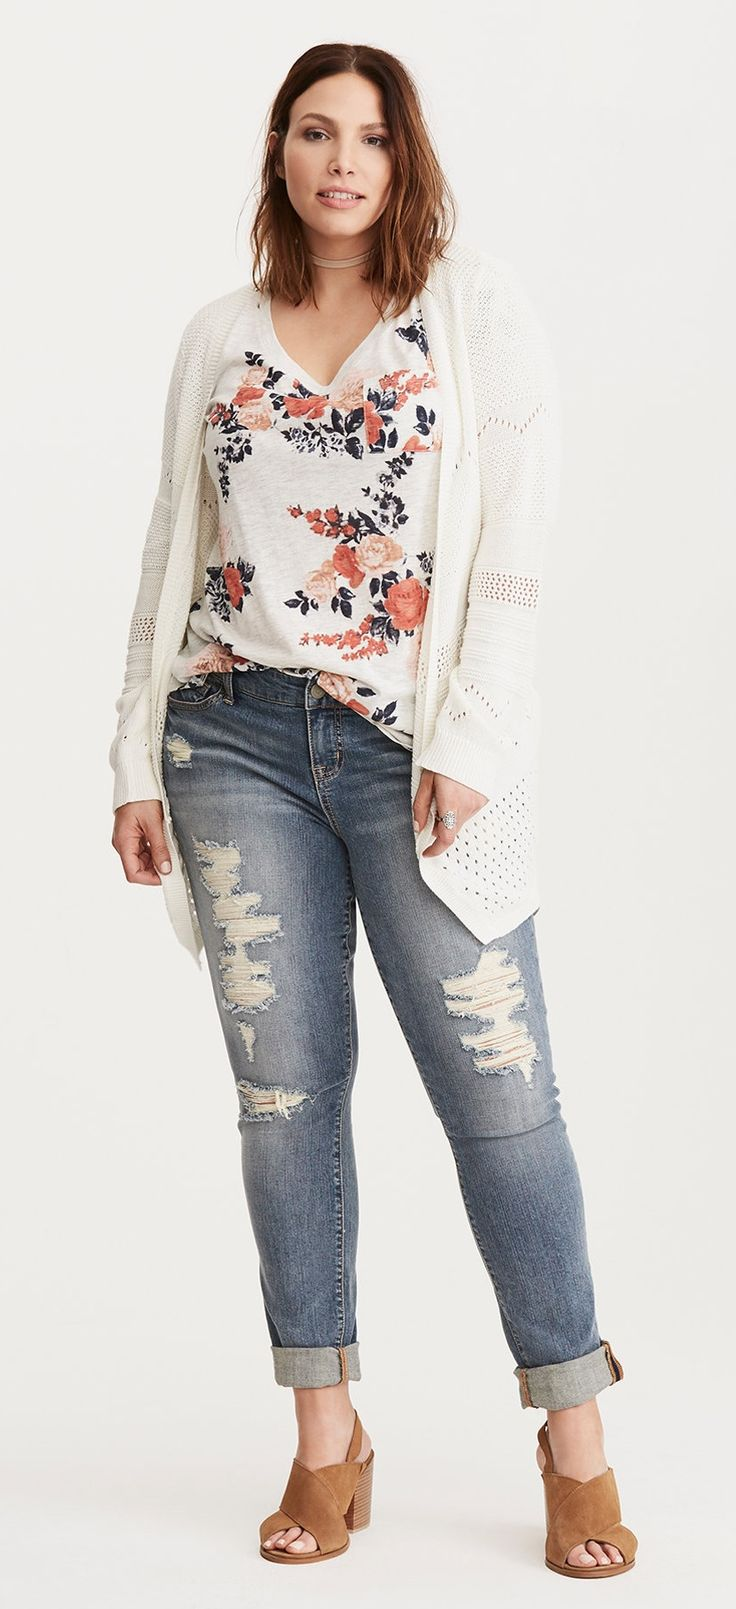 25 best ideas about Plus size casual on Pinterest  Plus size style Womens plus size style